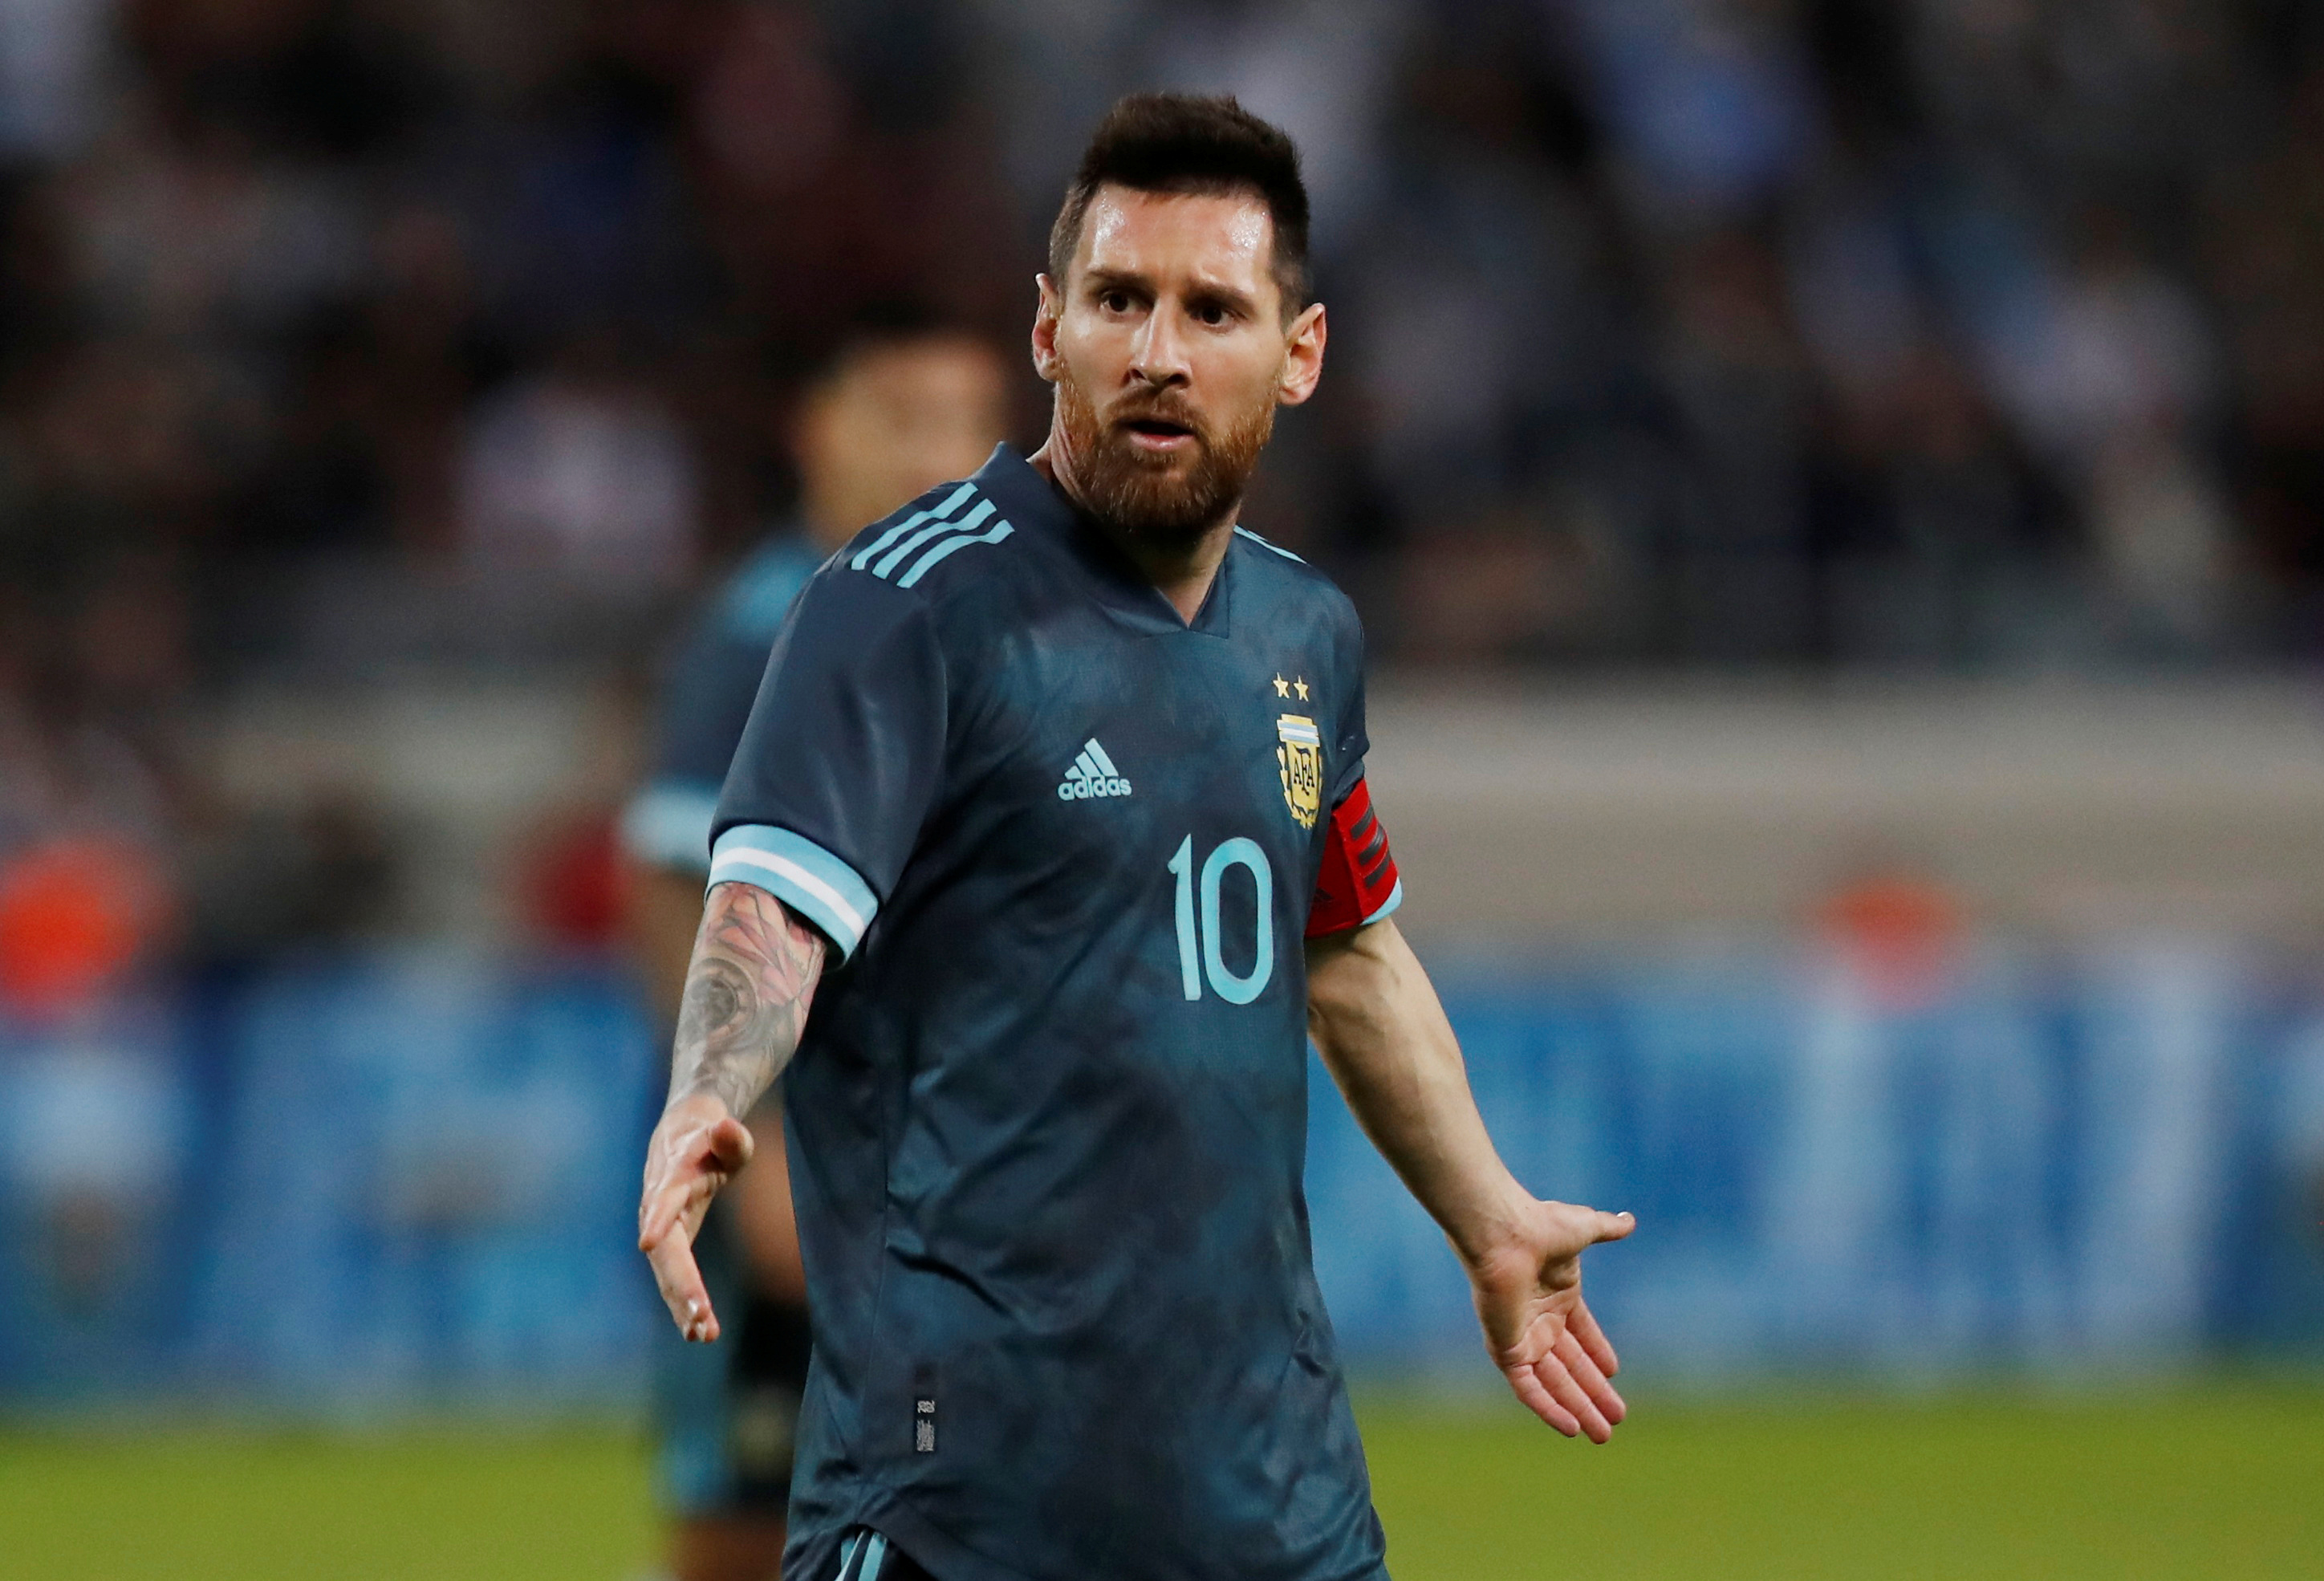 Eden Hazard Cannot Replace Cristiano Ronaldo - Lionel Messi